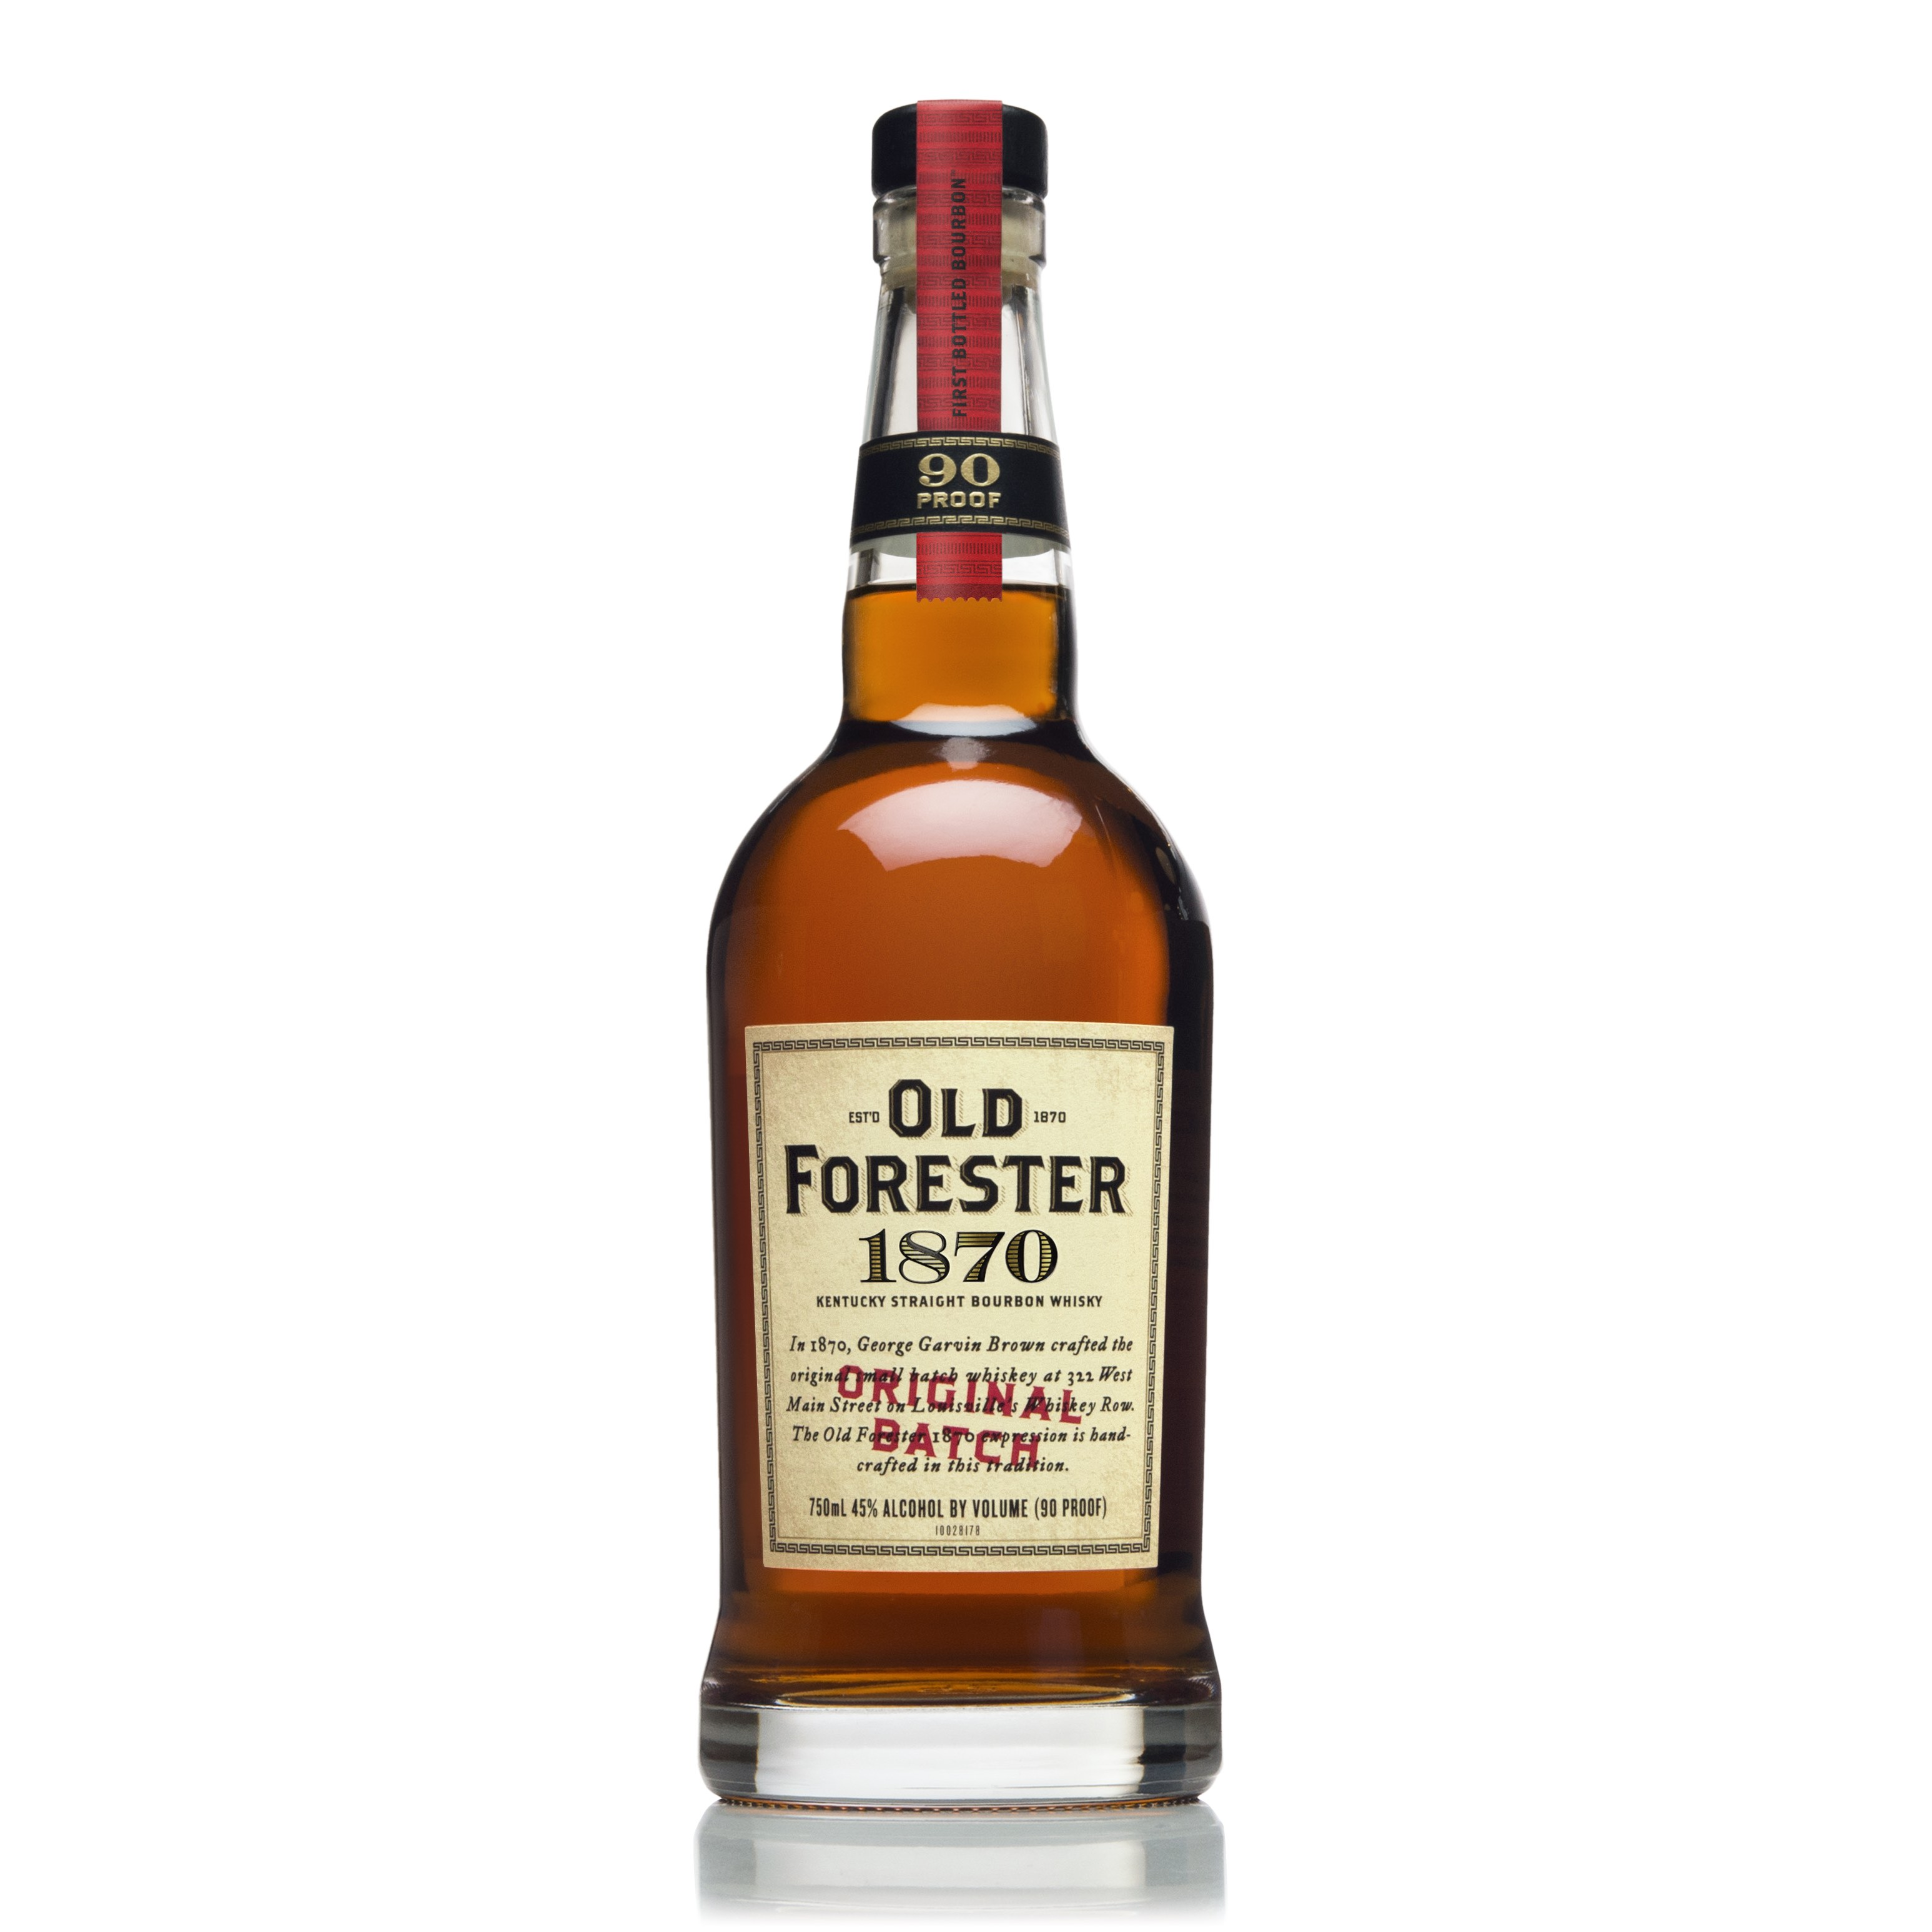 Old forester 2